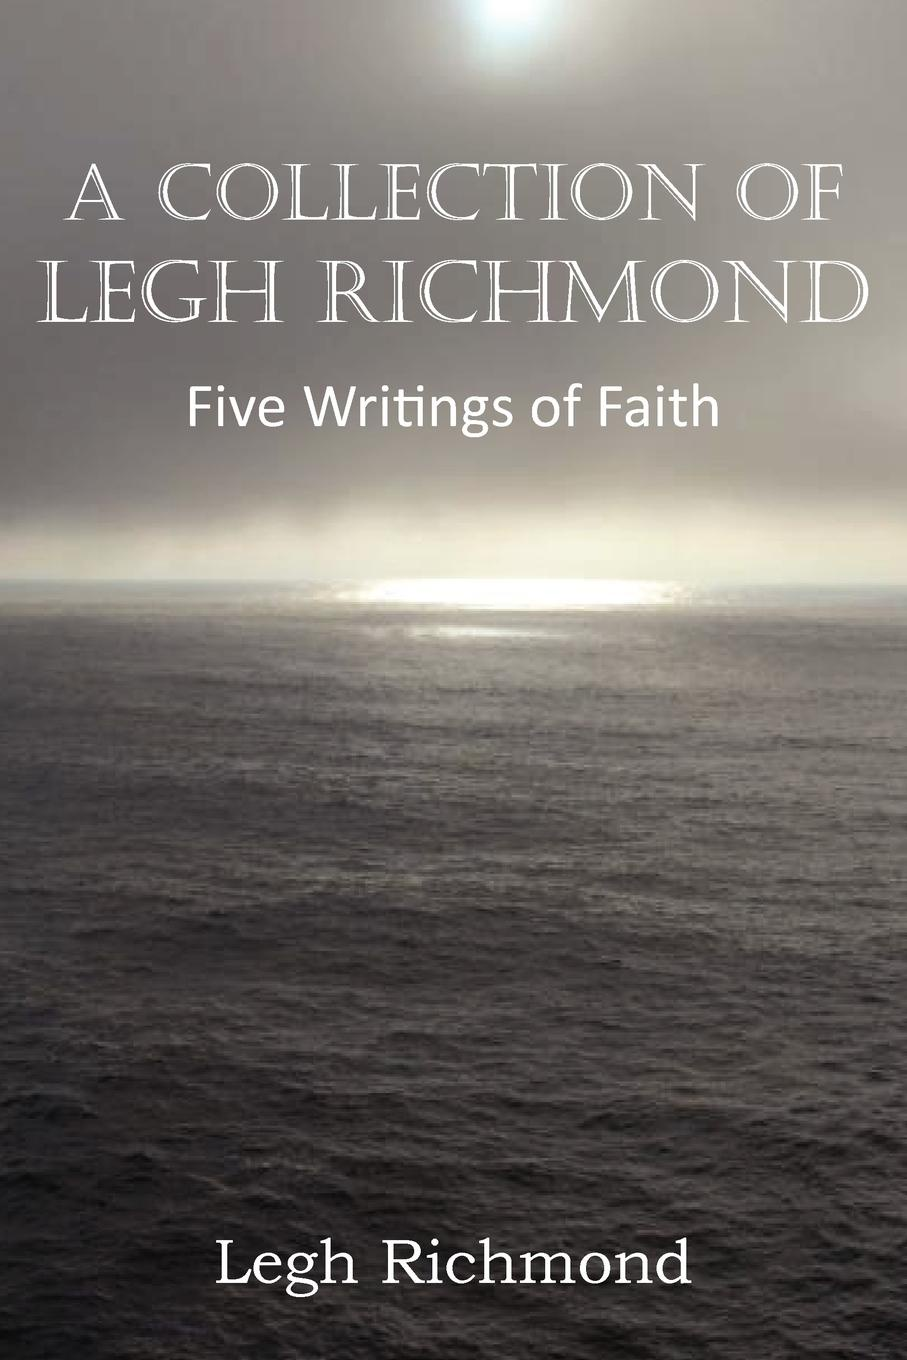 Legh Richmond A Collection of Legh Richmond, Five Writings of Faith biographical writings s